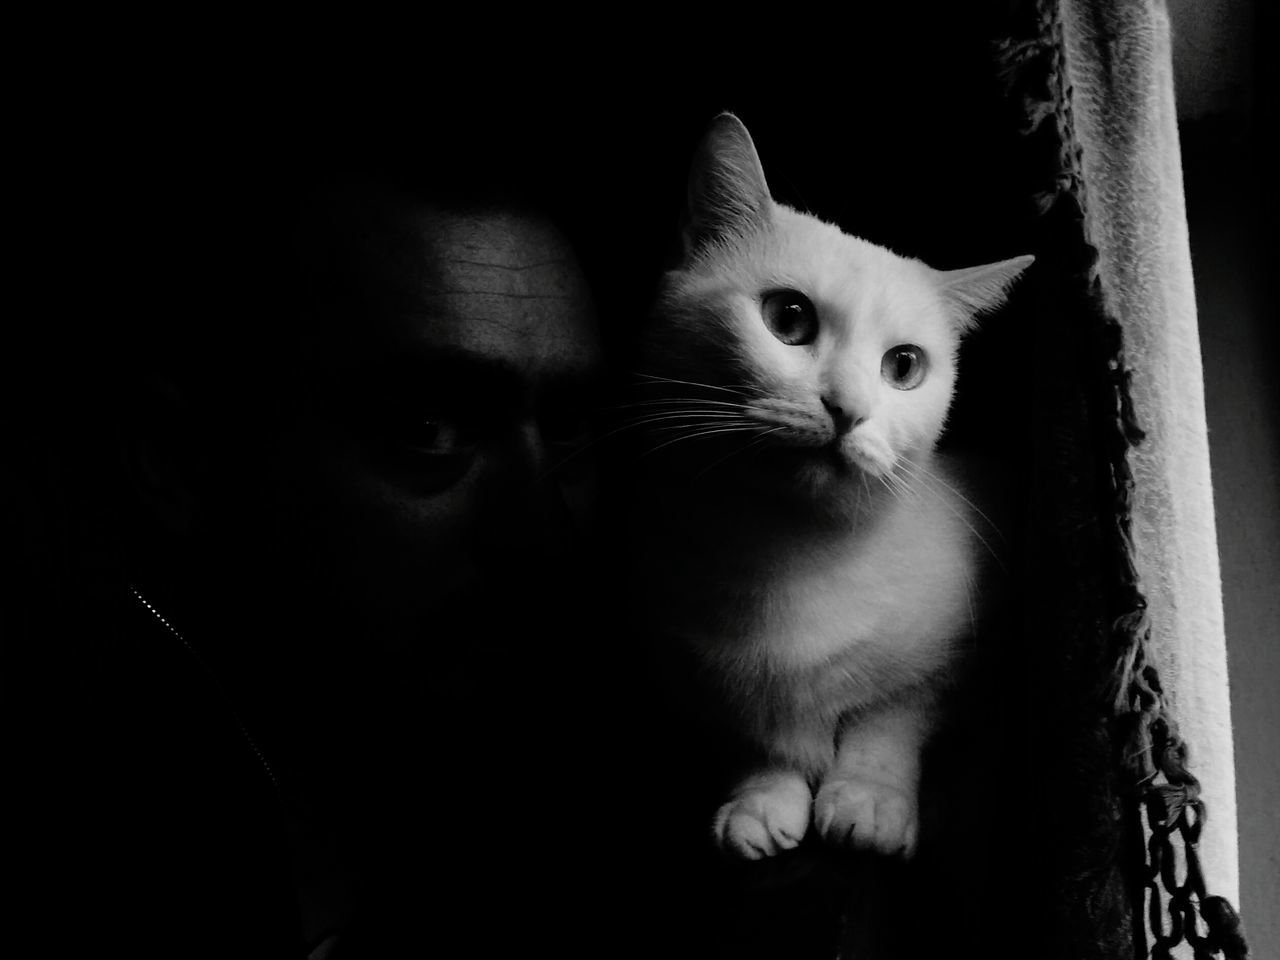 Me and my love! Domestic Cat Pets Looking At Camera Watching Close-up Me Cat Bestfriend❤ Love❤ Dark Black&white Blackandwhitephotography Photography Look Shadows Watchout Animal Pet Pet Photography  Black Background OneLove Domestic Animals Animal Themes Portrait